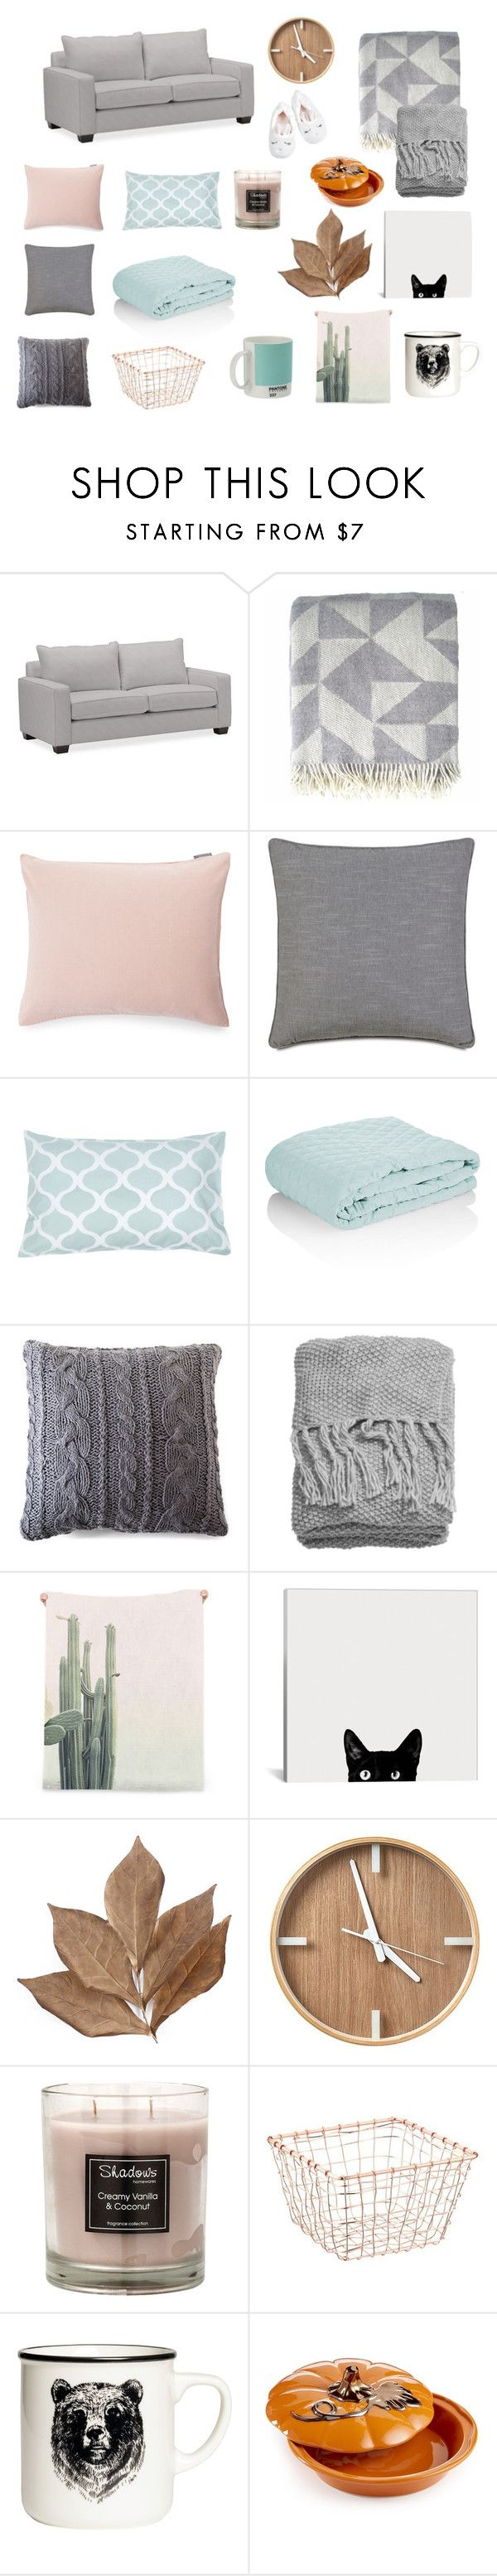 """AUTUMN at HOME"" by sweetlittlebunny on Polyvore featuring interior, interiors, interior design, dom, home decor, interior decorating, Pottery Barn, Lexington, Allem Studio i Pom Pom at Home"